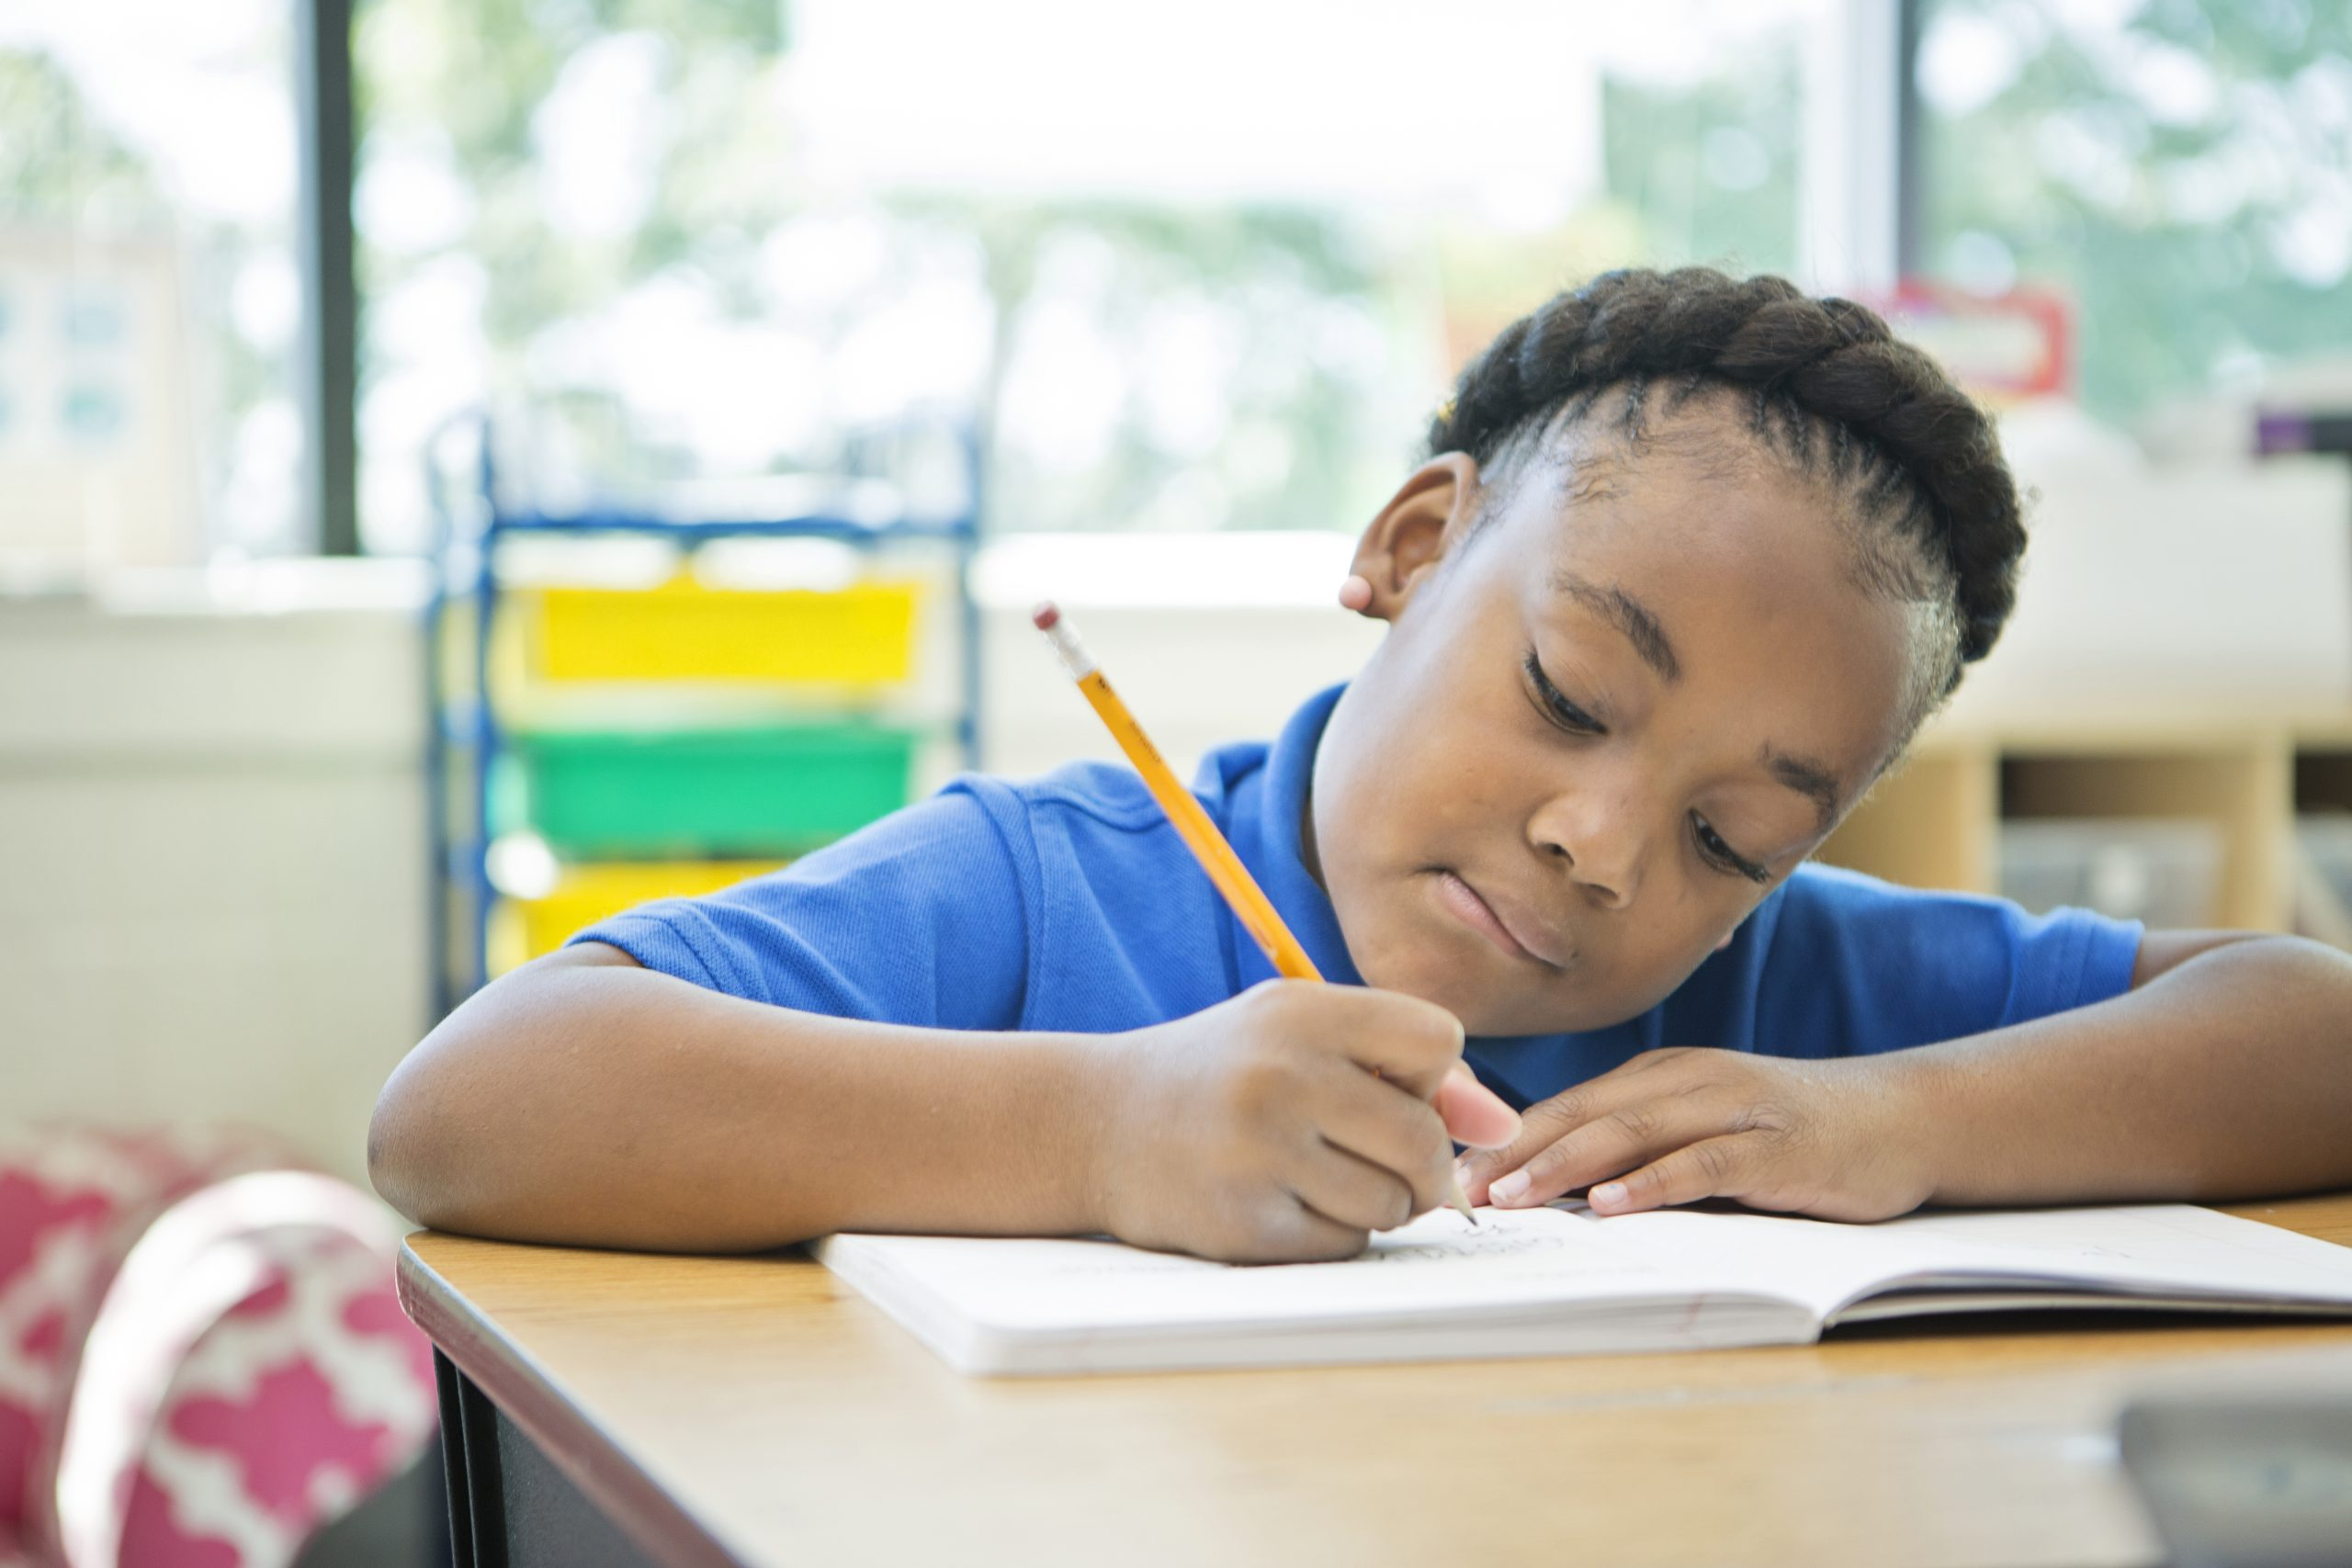 photo of child in school writing in a workbook